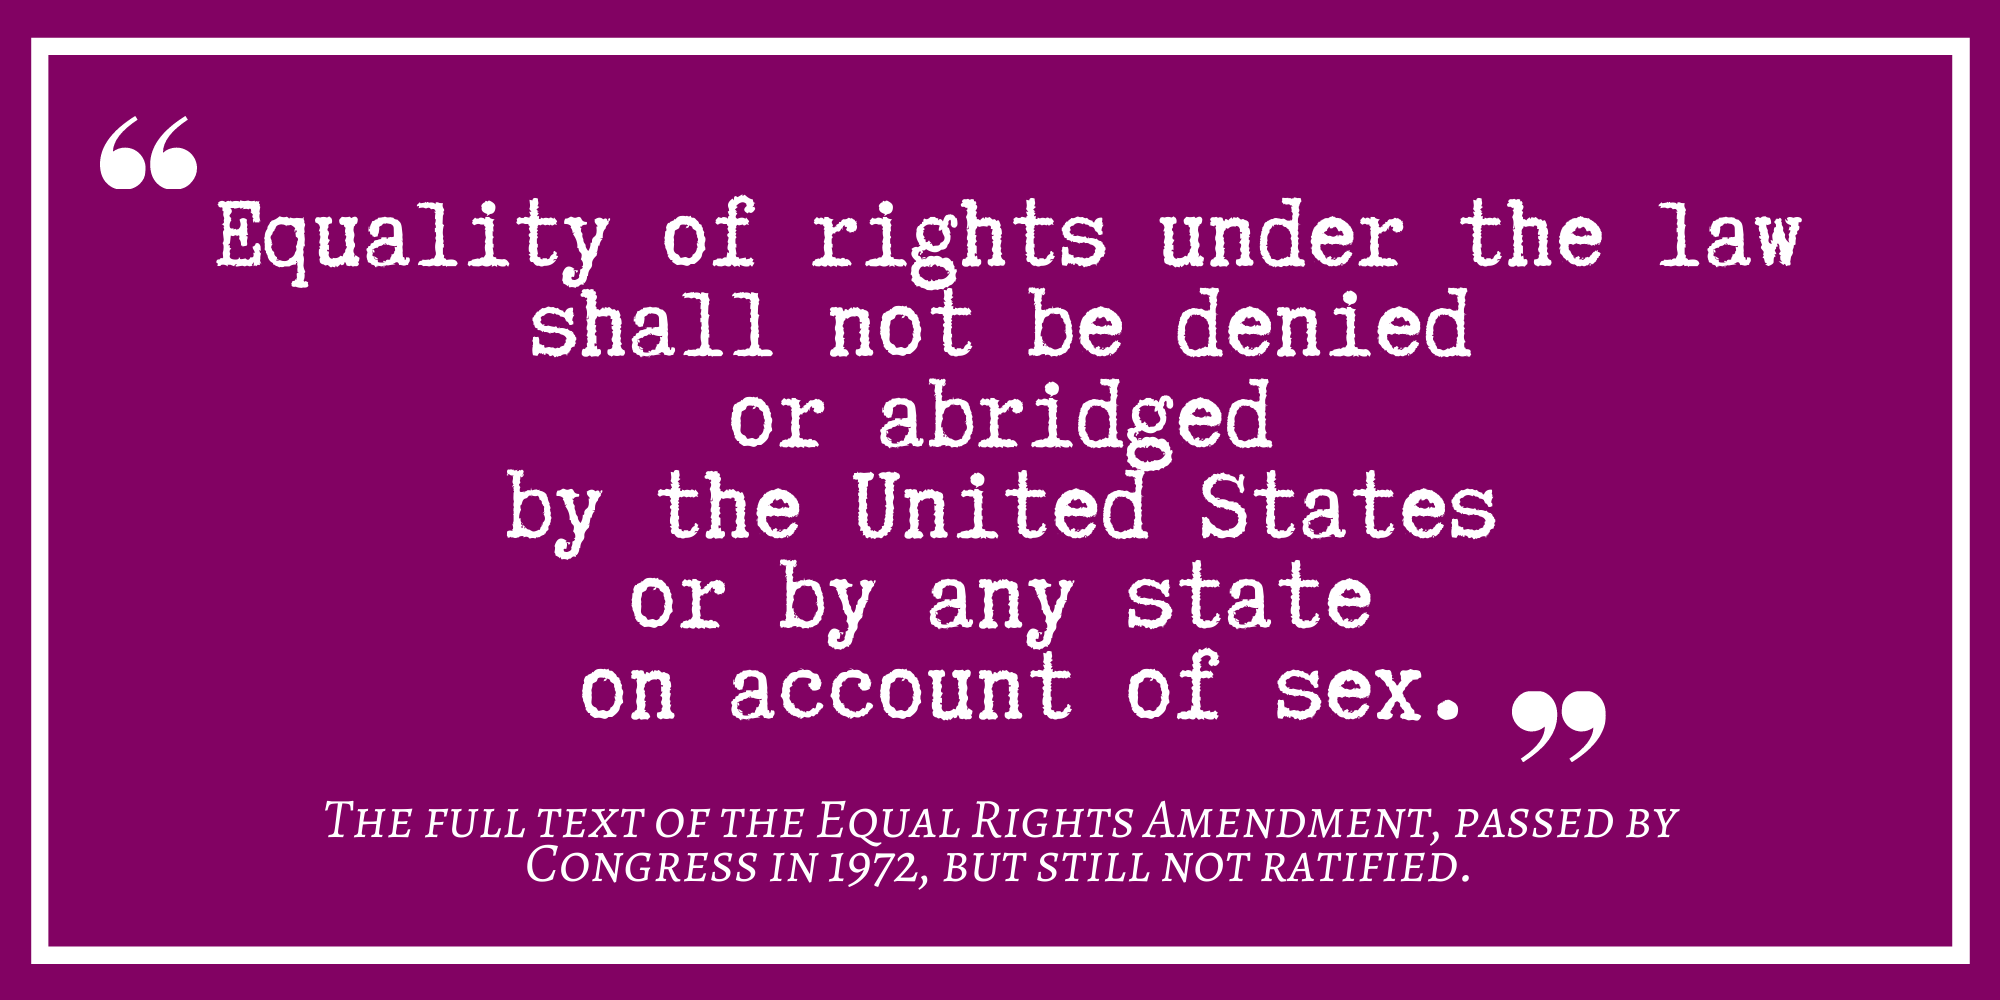 Equality of rights under the law  shall not be denied or abridged by the United States or by any state on account of sex. Equal Rights Amendment Text